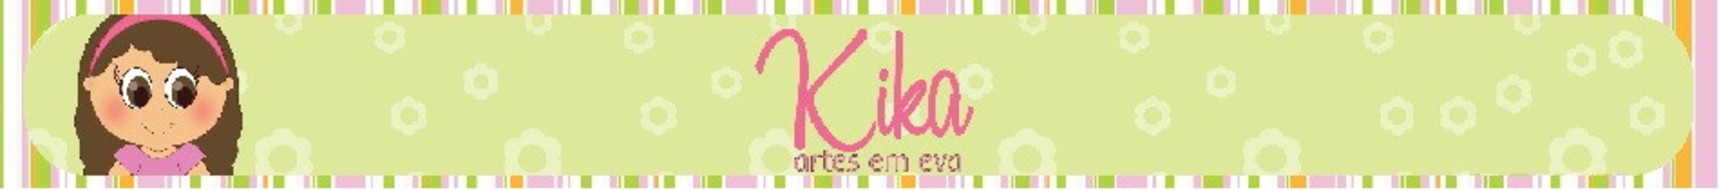 KIKA ARTES EM EVA